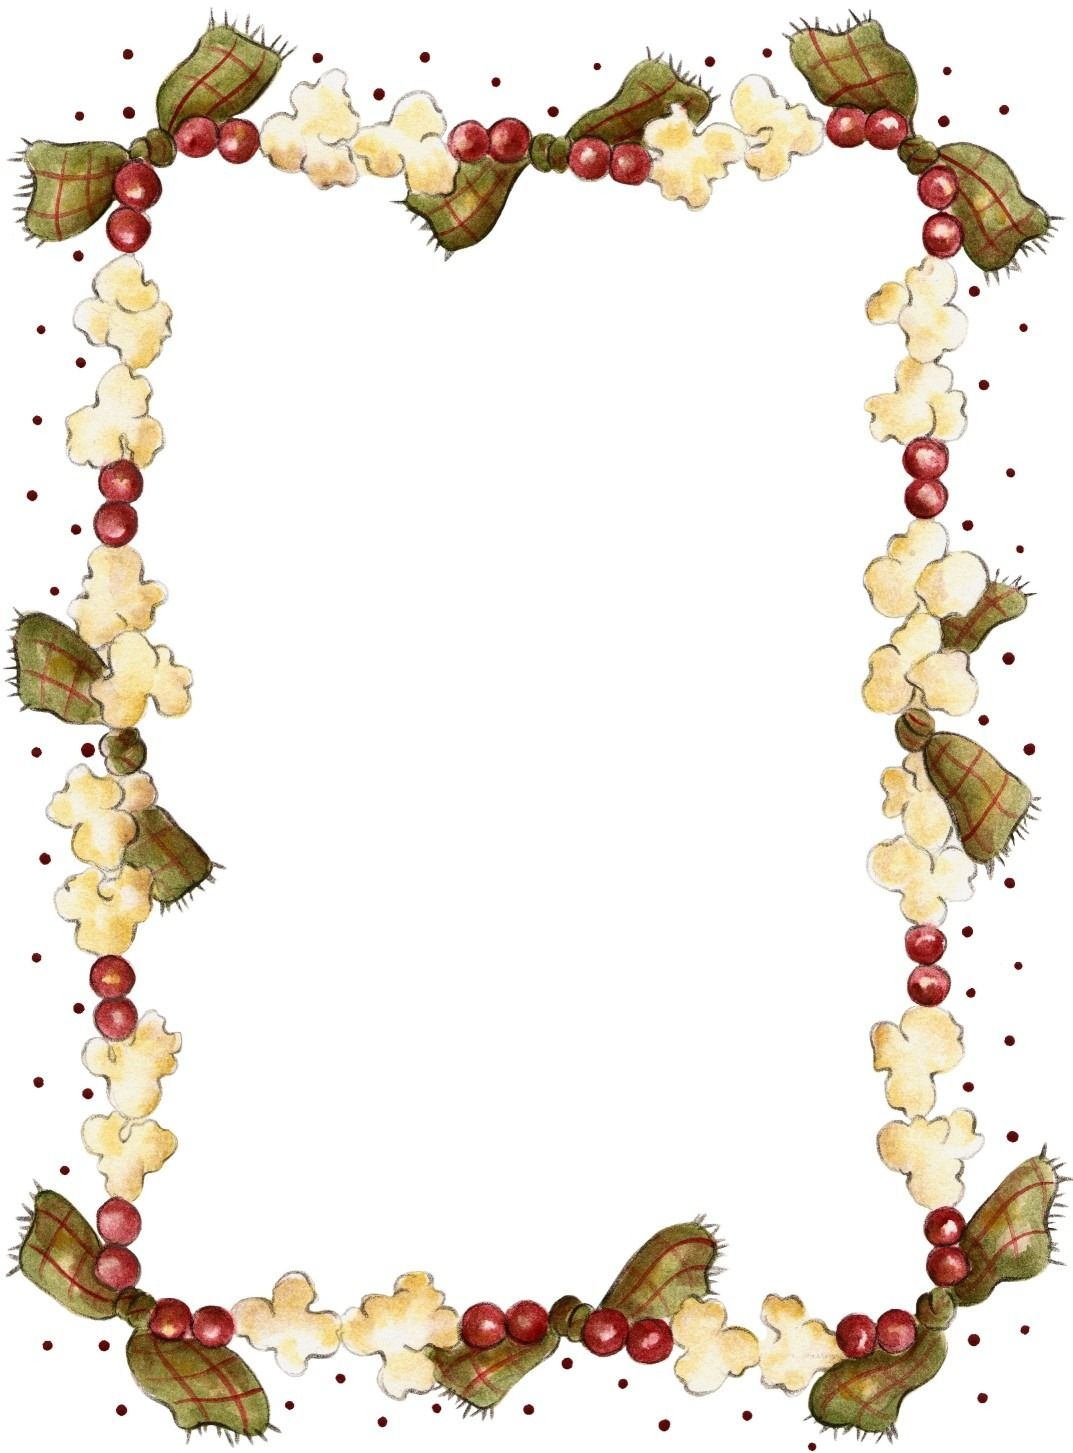 Border clipart popcorn. Printable christmas recipe page